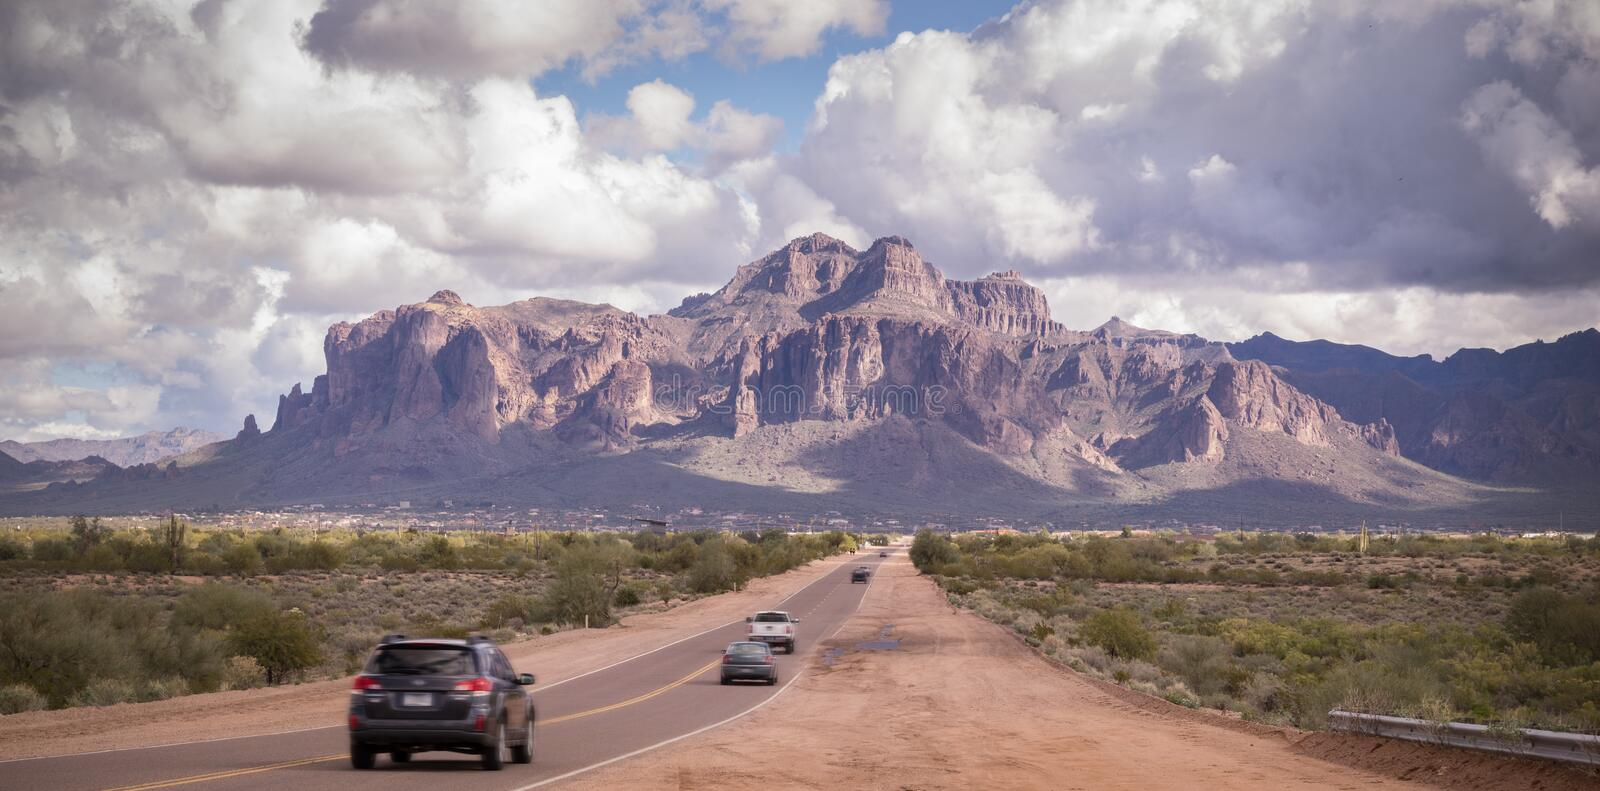 Arizona desert road leading to Superstition Mountain near Phoenix,Az,USA royalty free stock photos